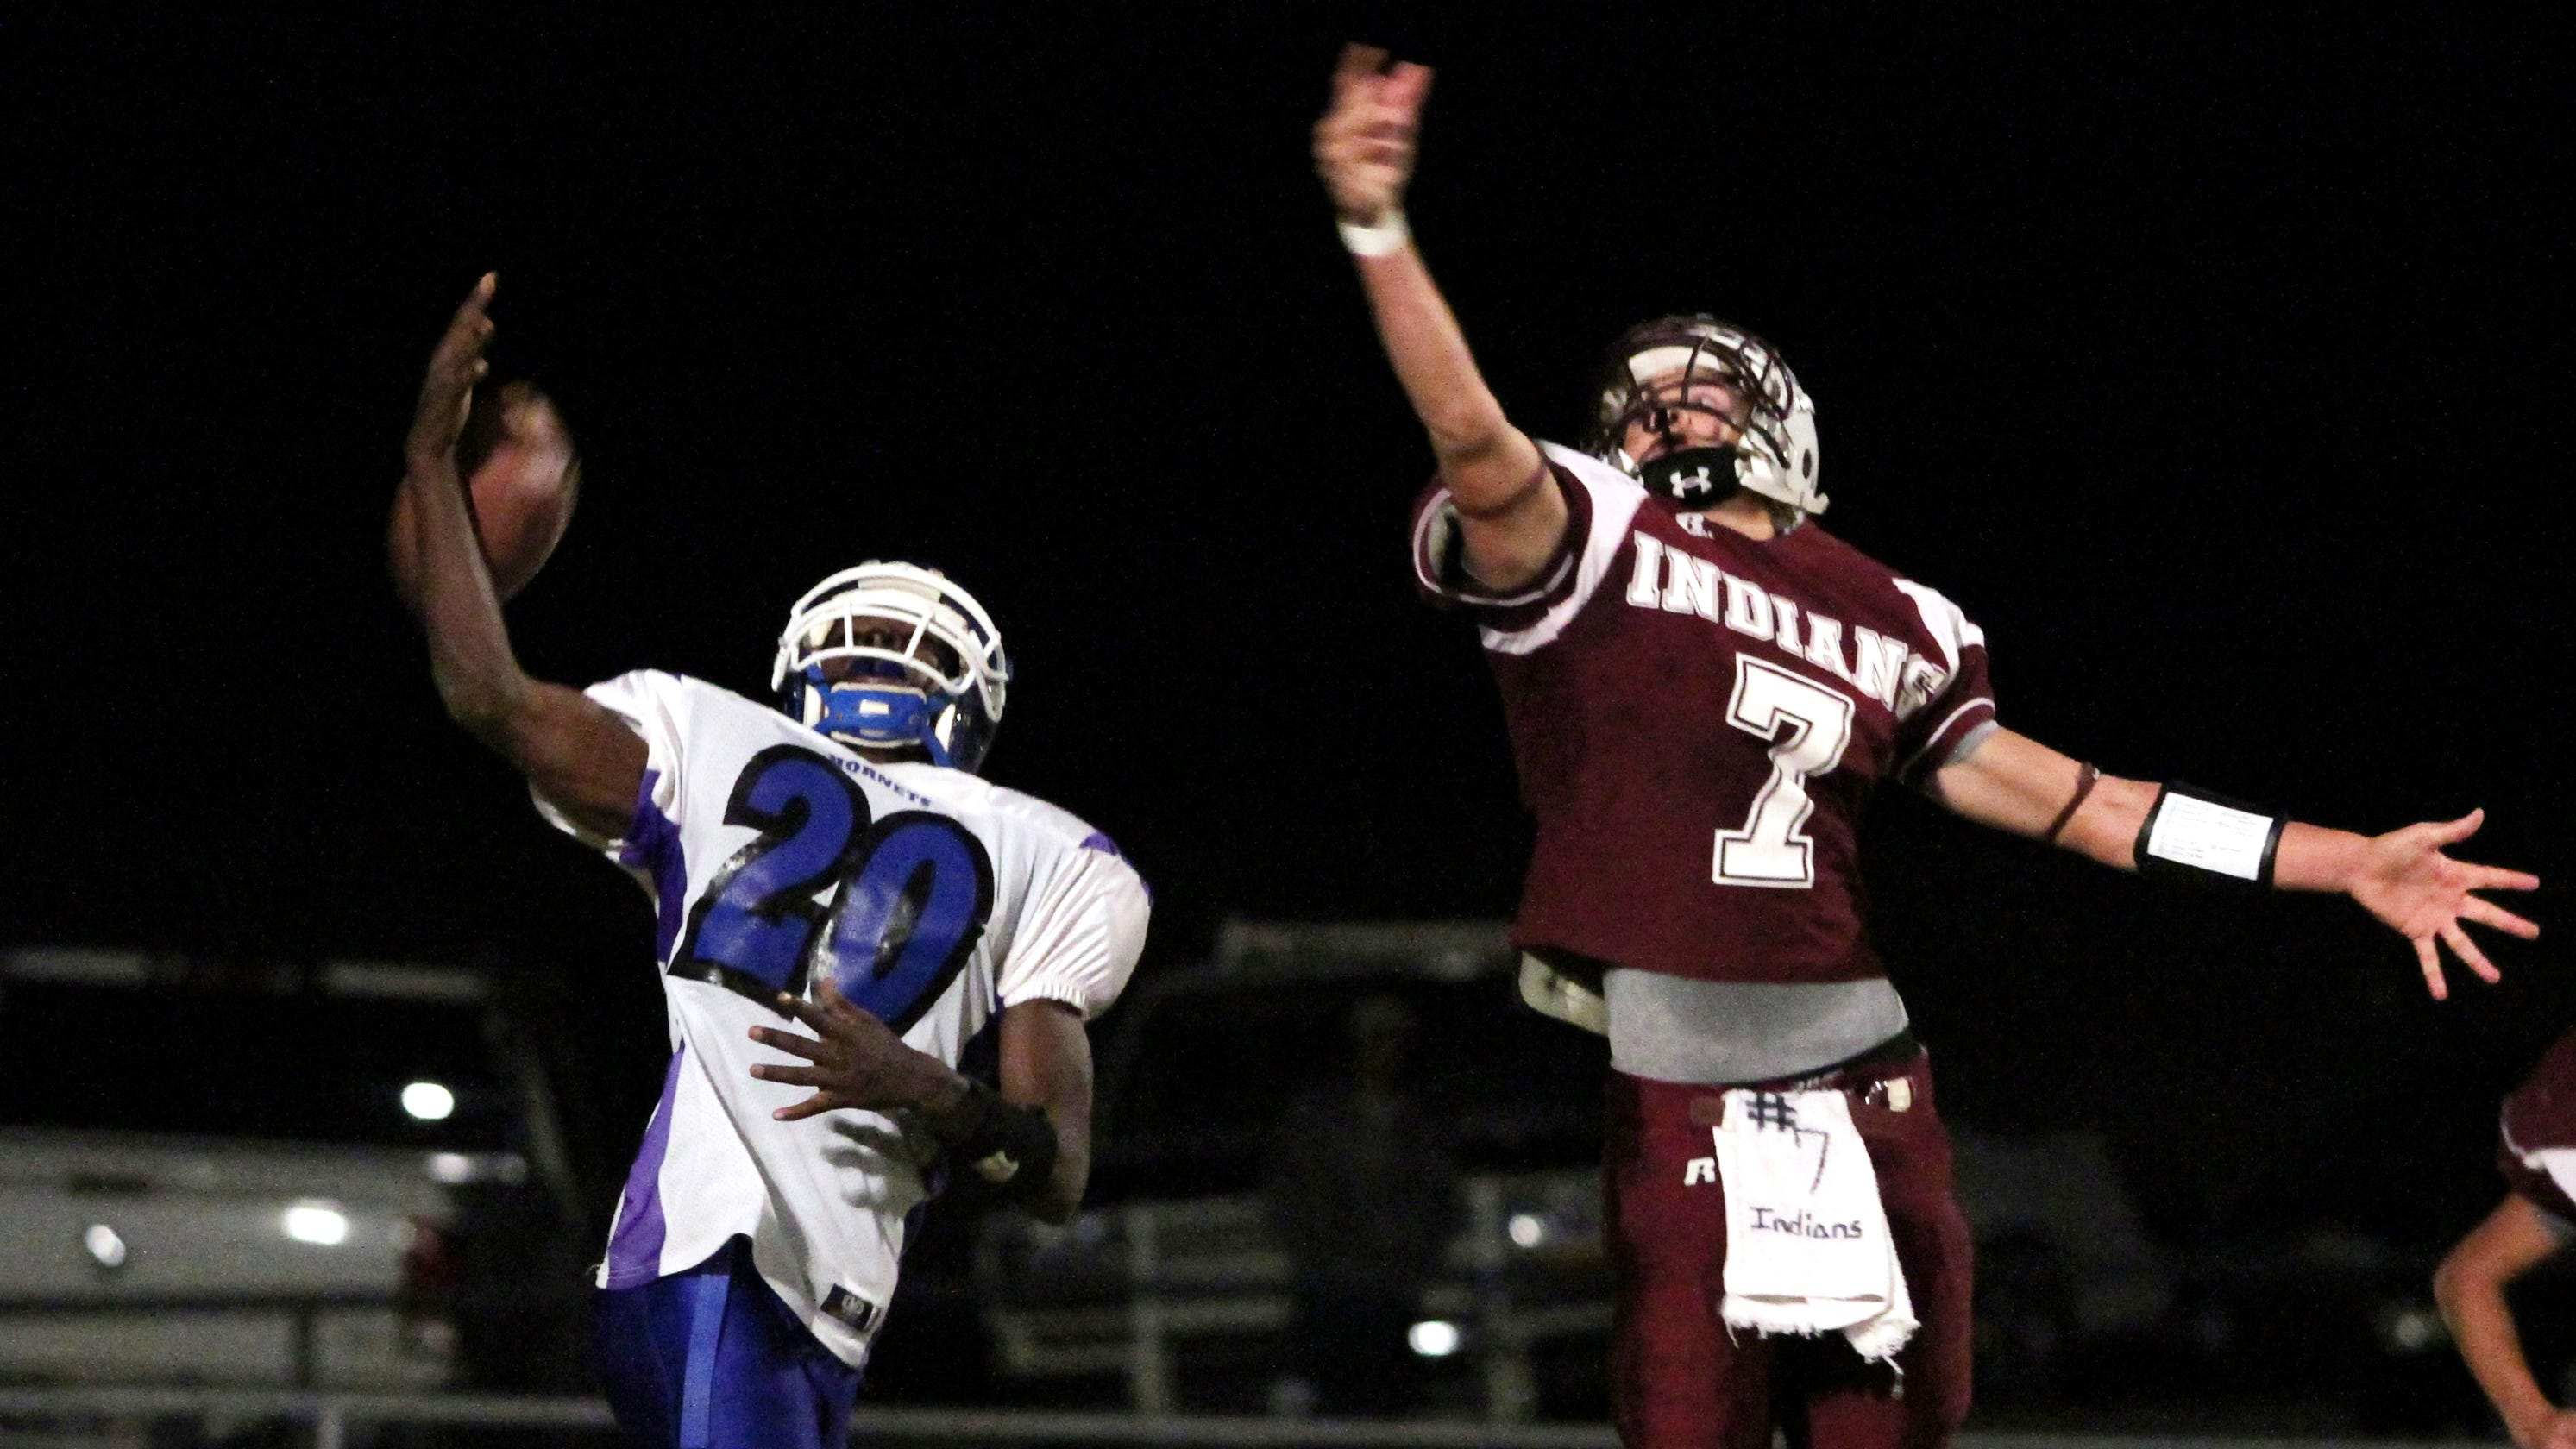 Top 10 Football Games of the Decade in West Texas (1A-3A)